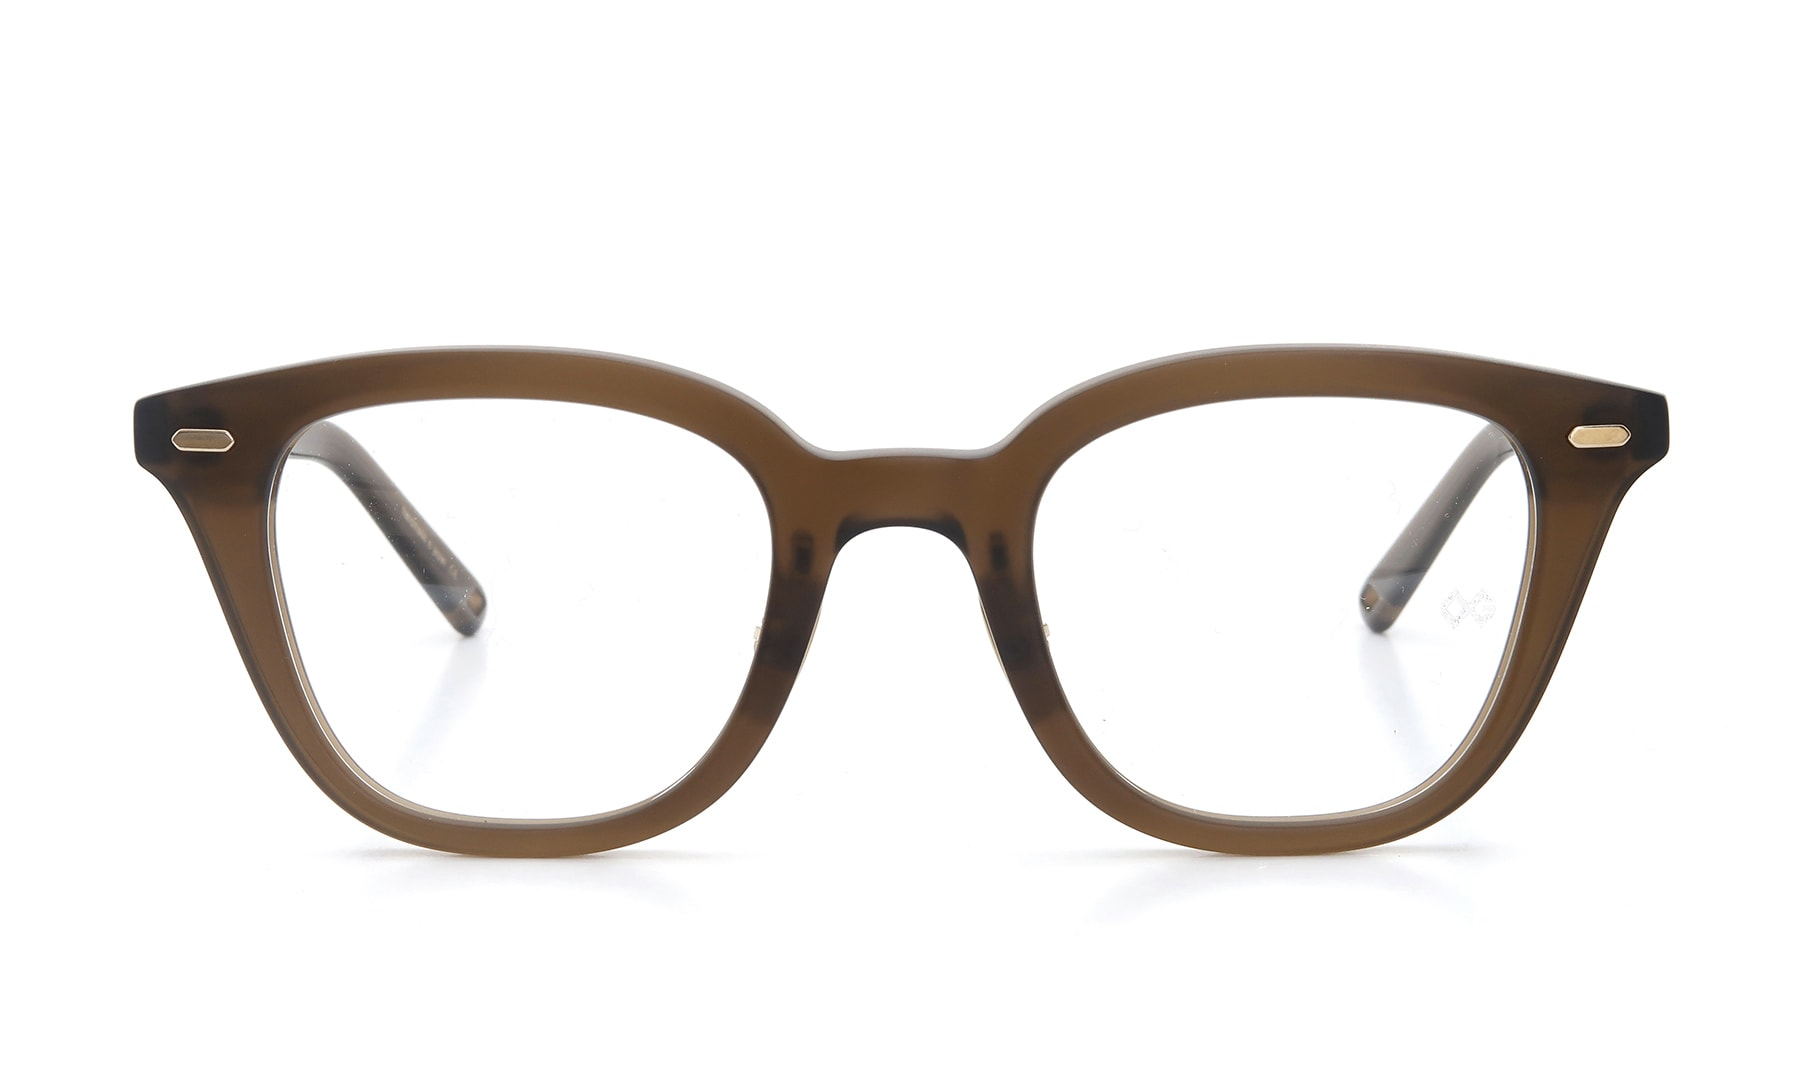 OG × OLIVER GOLDSMITH Re:MAY 46 リ:メイ 2